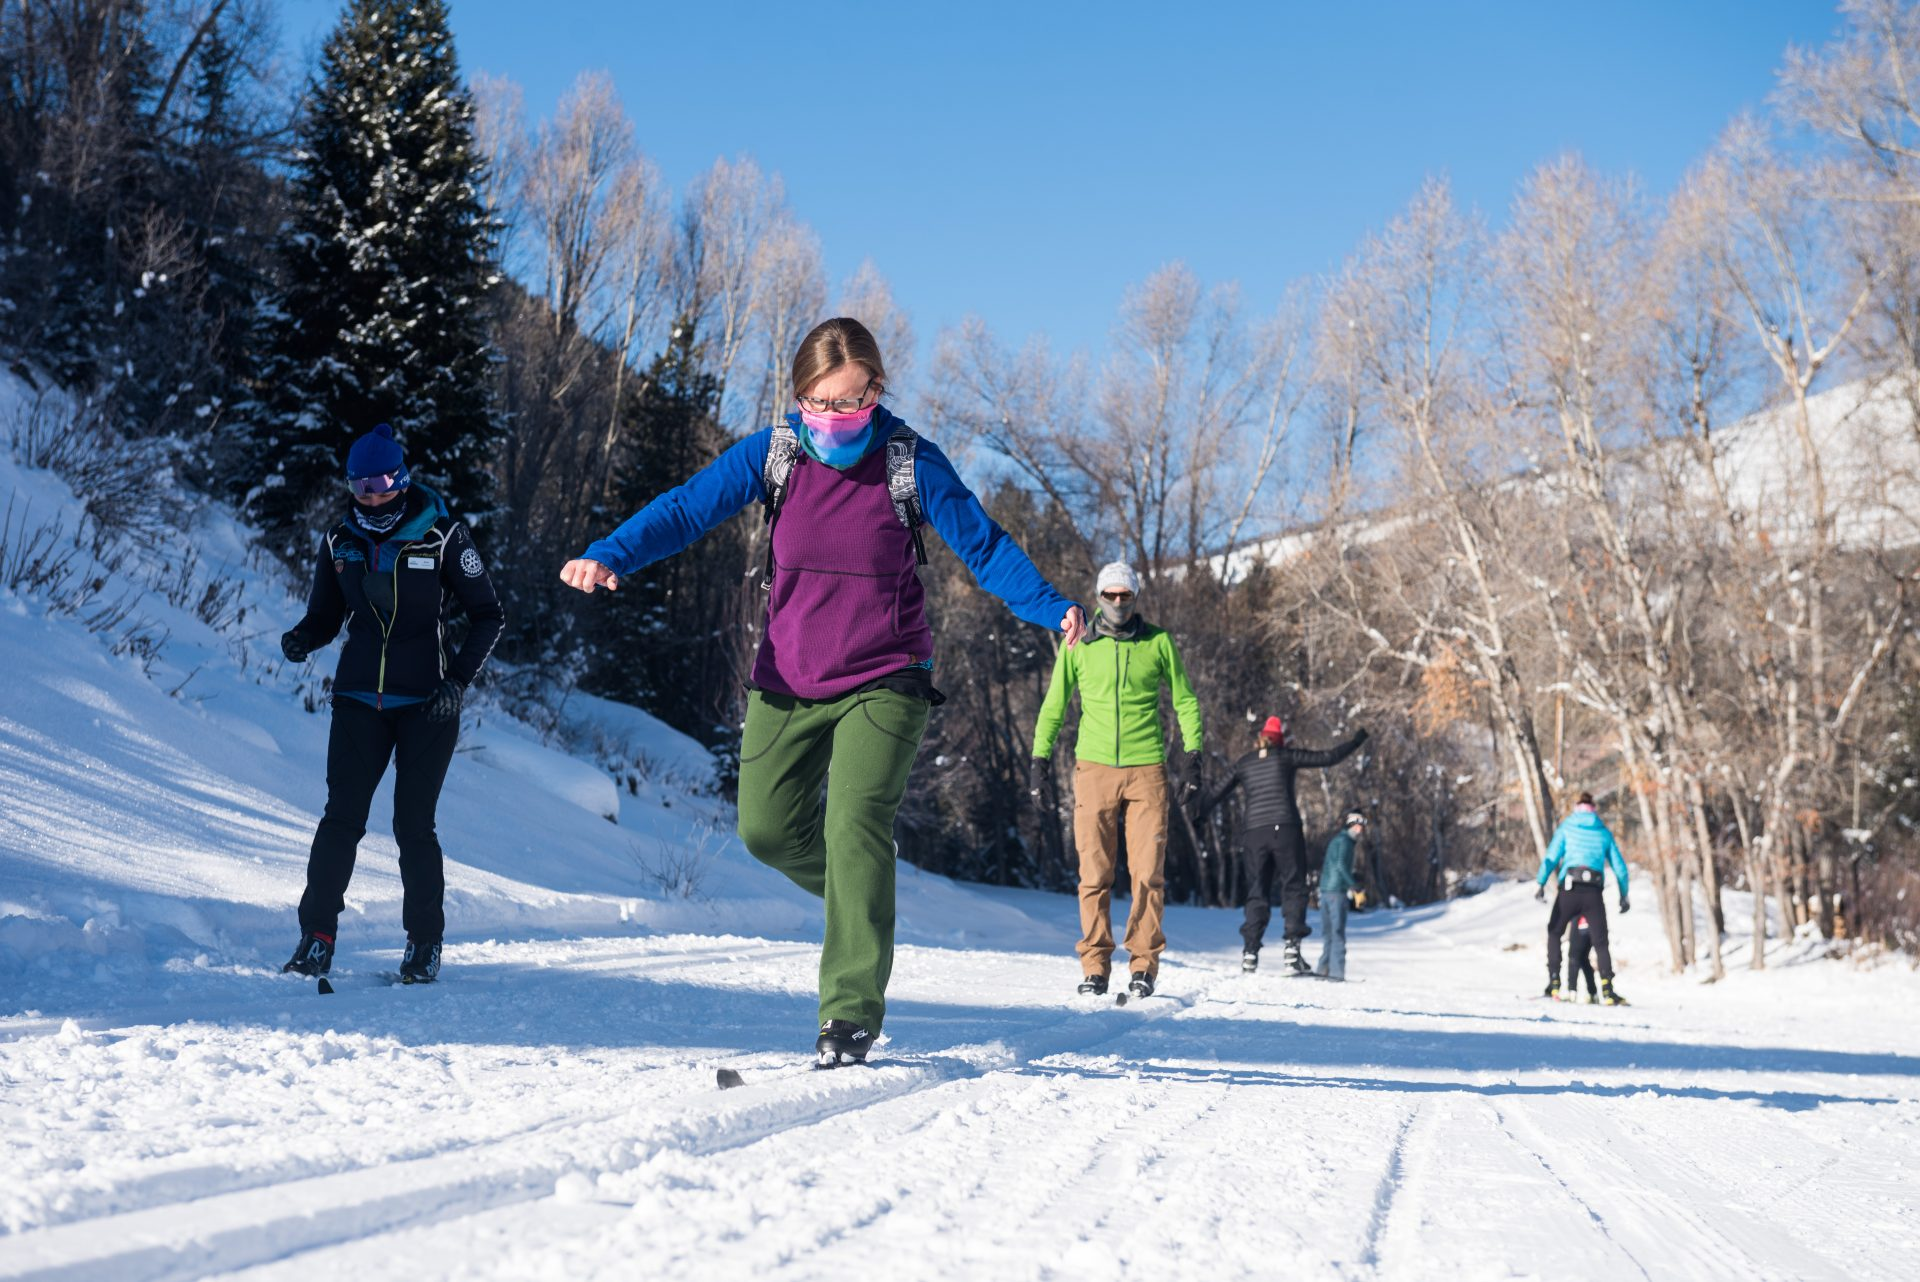 Beginner classic ski lesson at Crested Butte Nordic